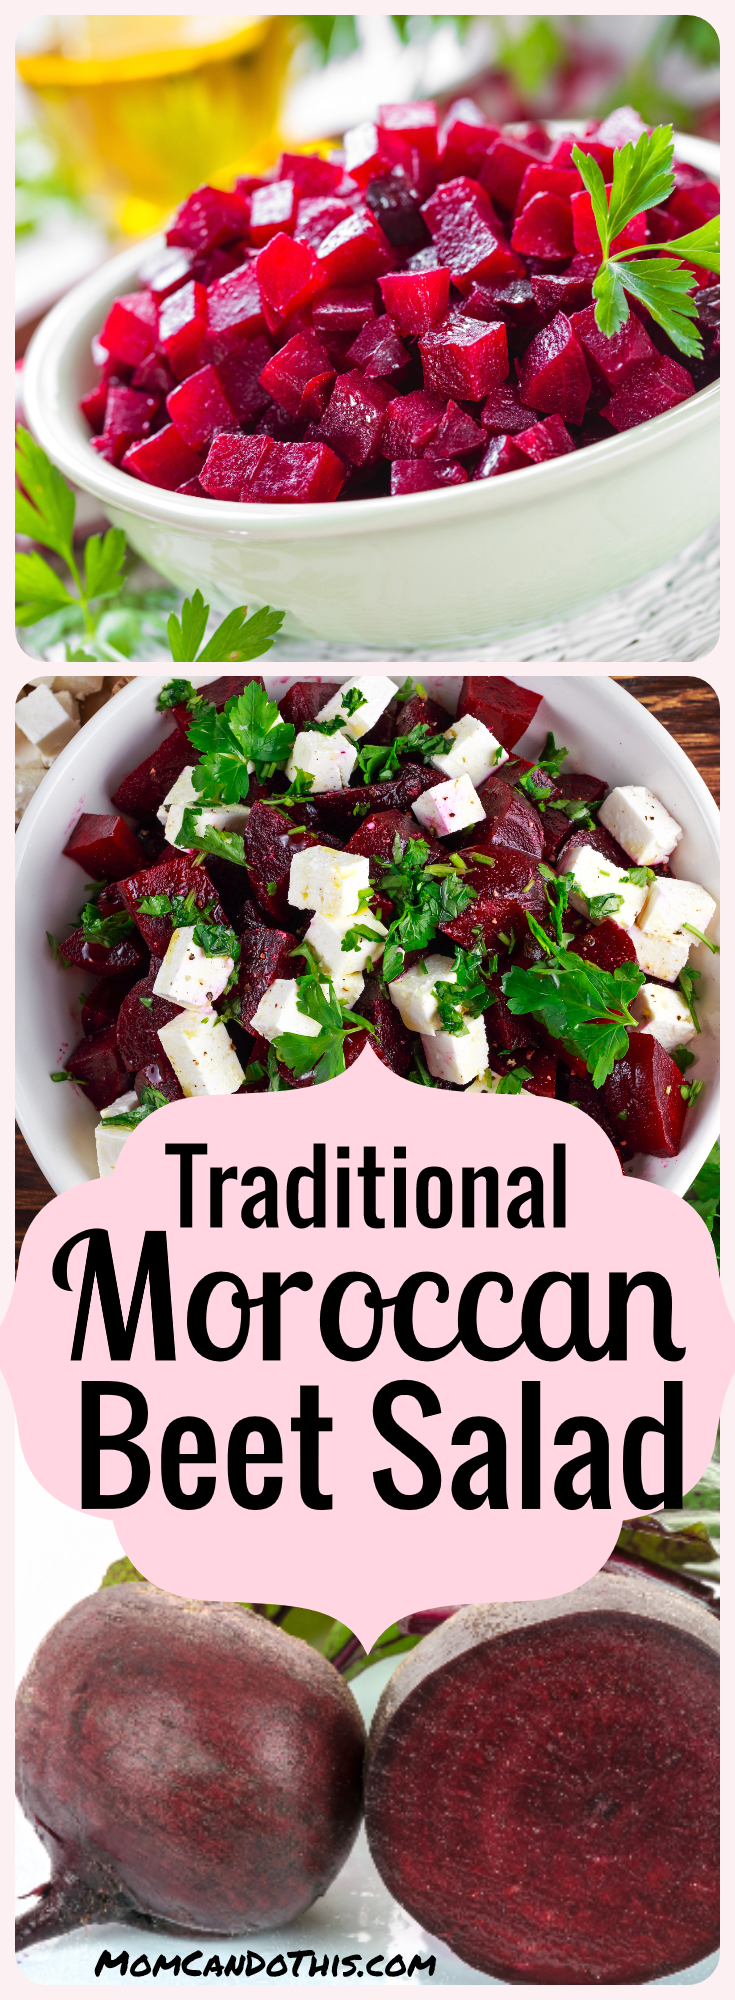 Moroccan Beet Salad Recipe